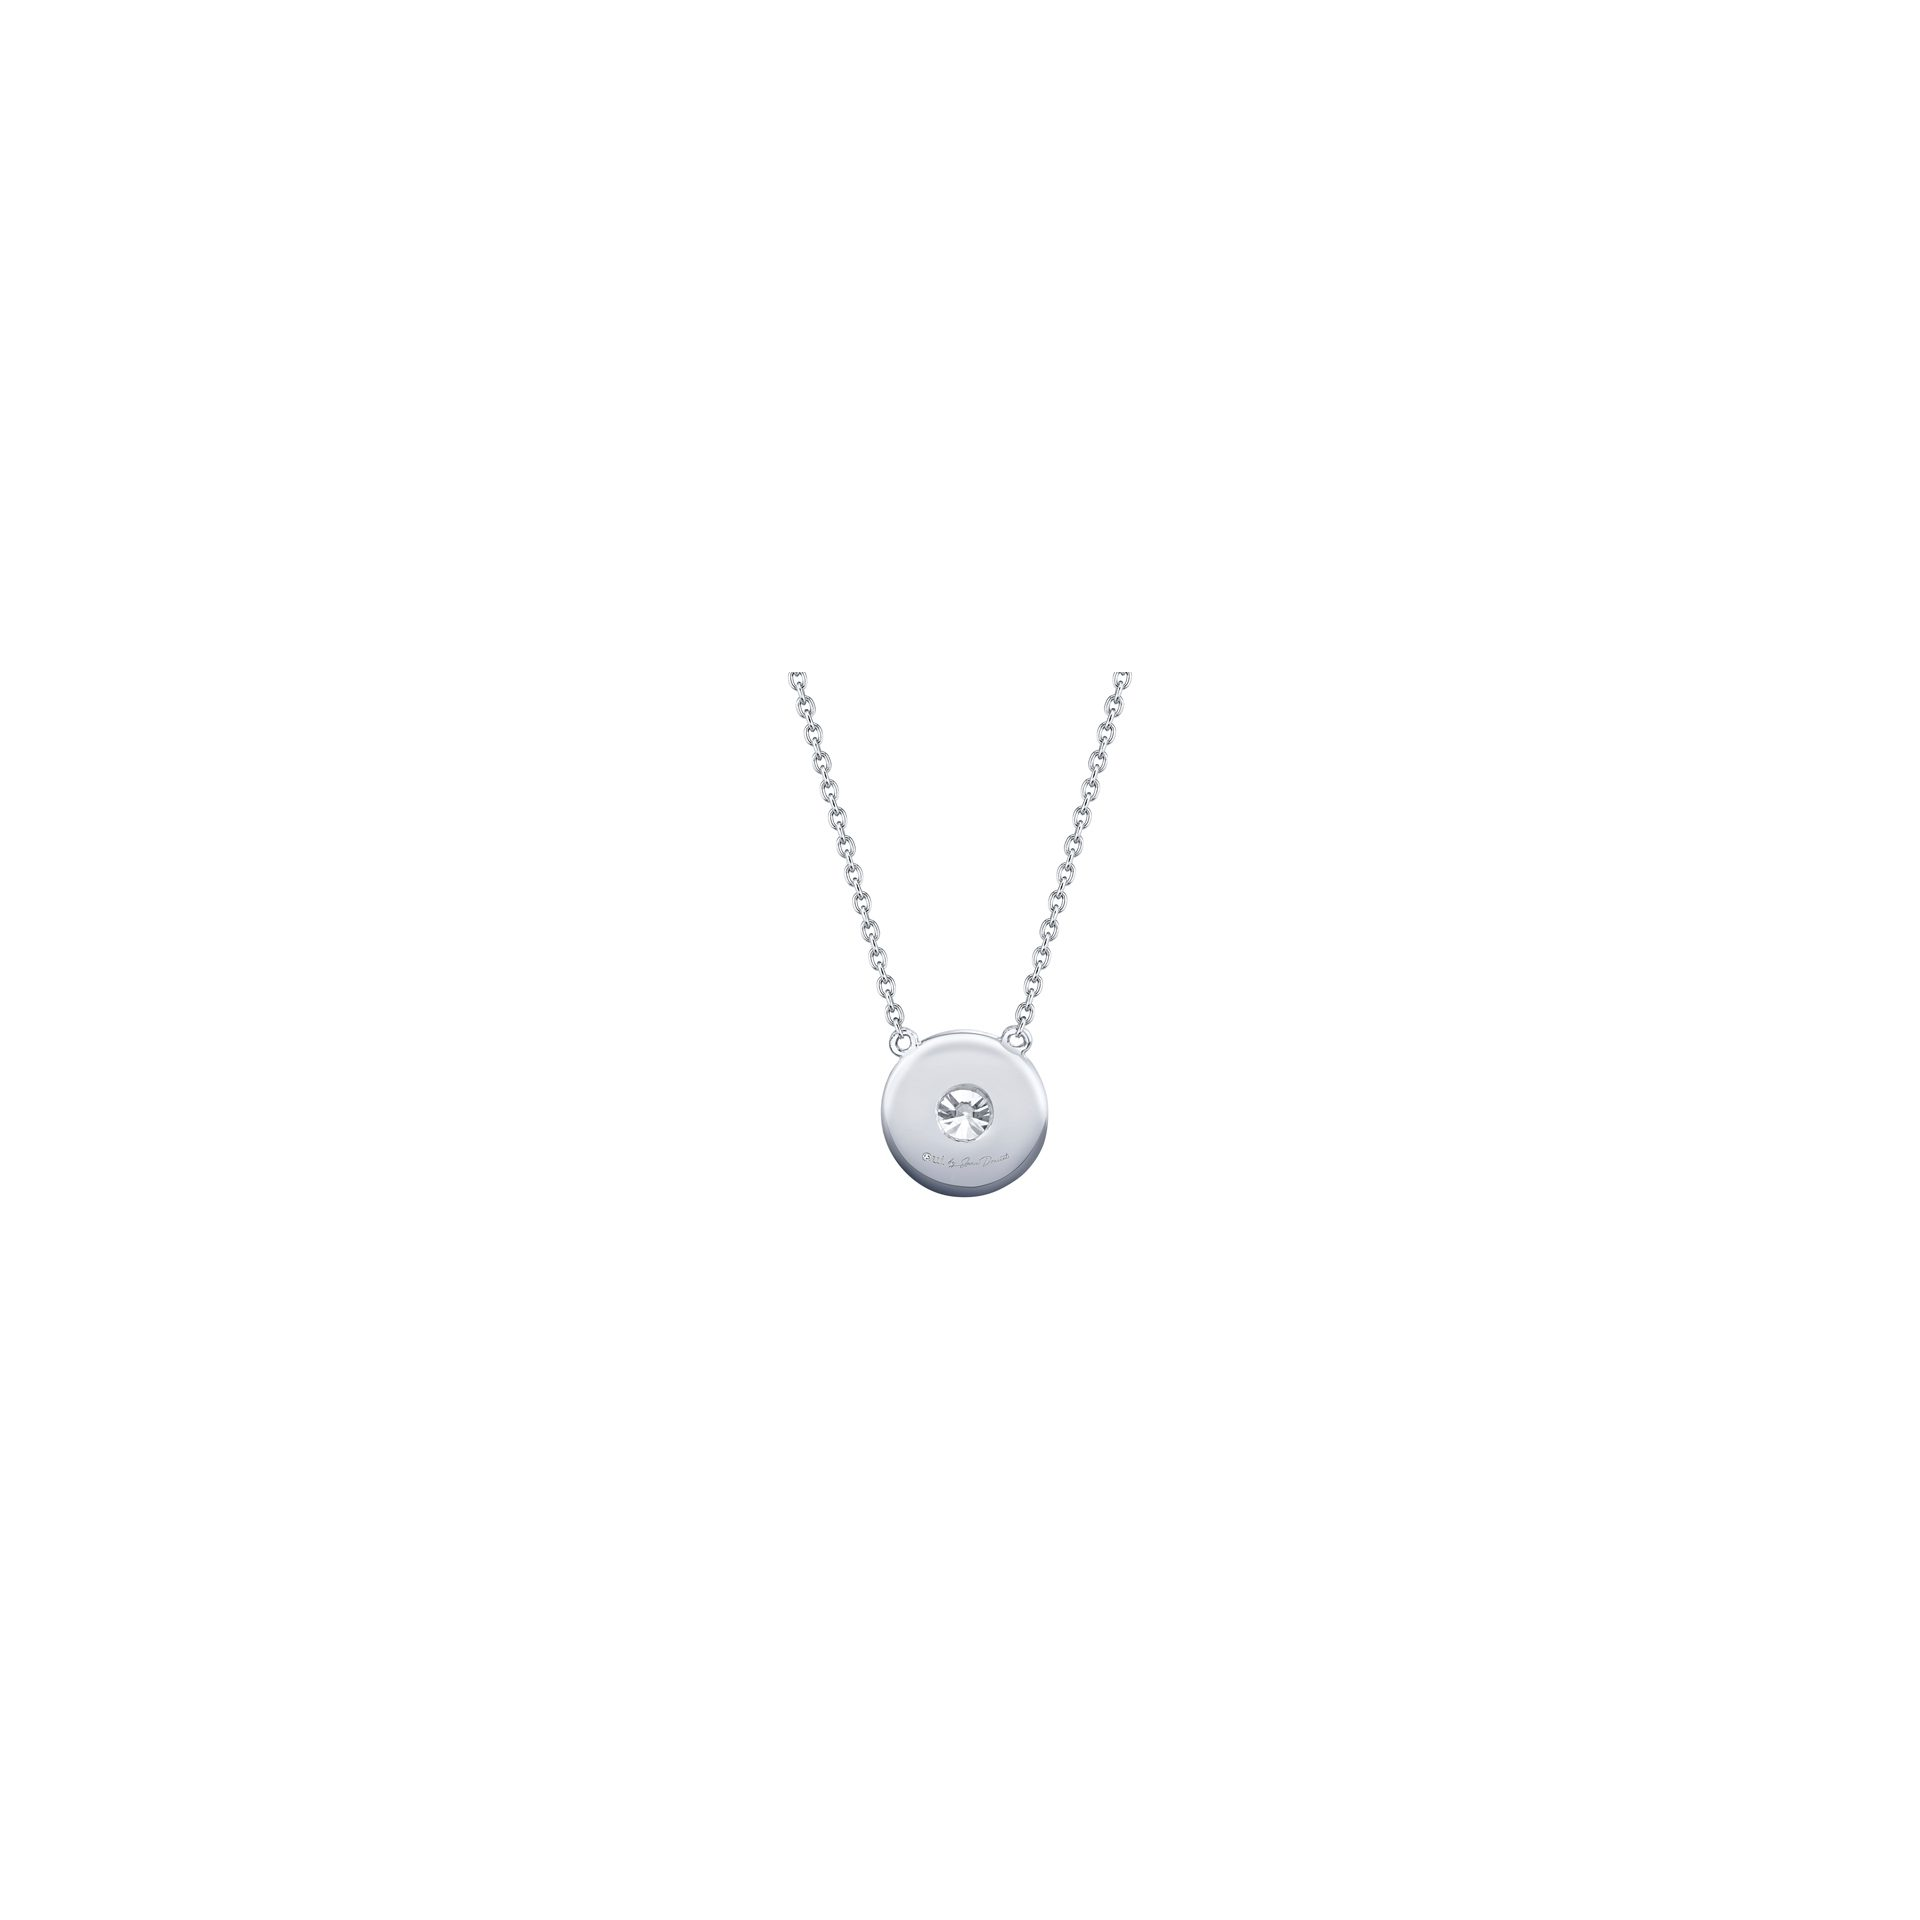 Lucile Round Brilliant Seamless Solitaire™ Diamond Pendant in 18k White Gold Back View by Oui by Jean Dousset